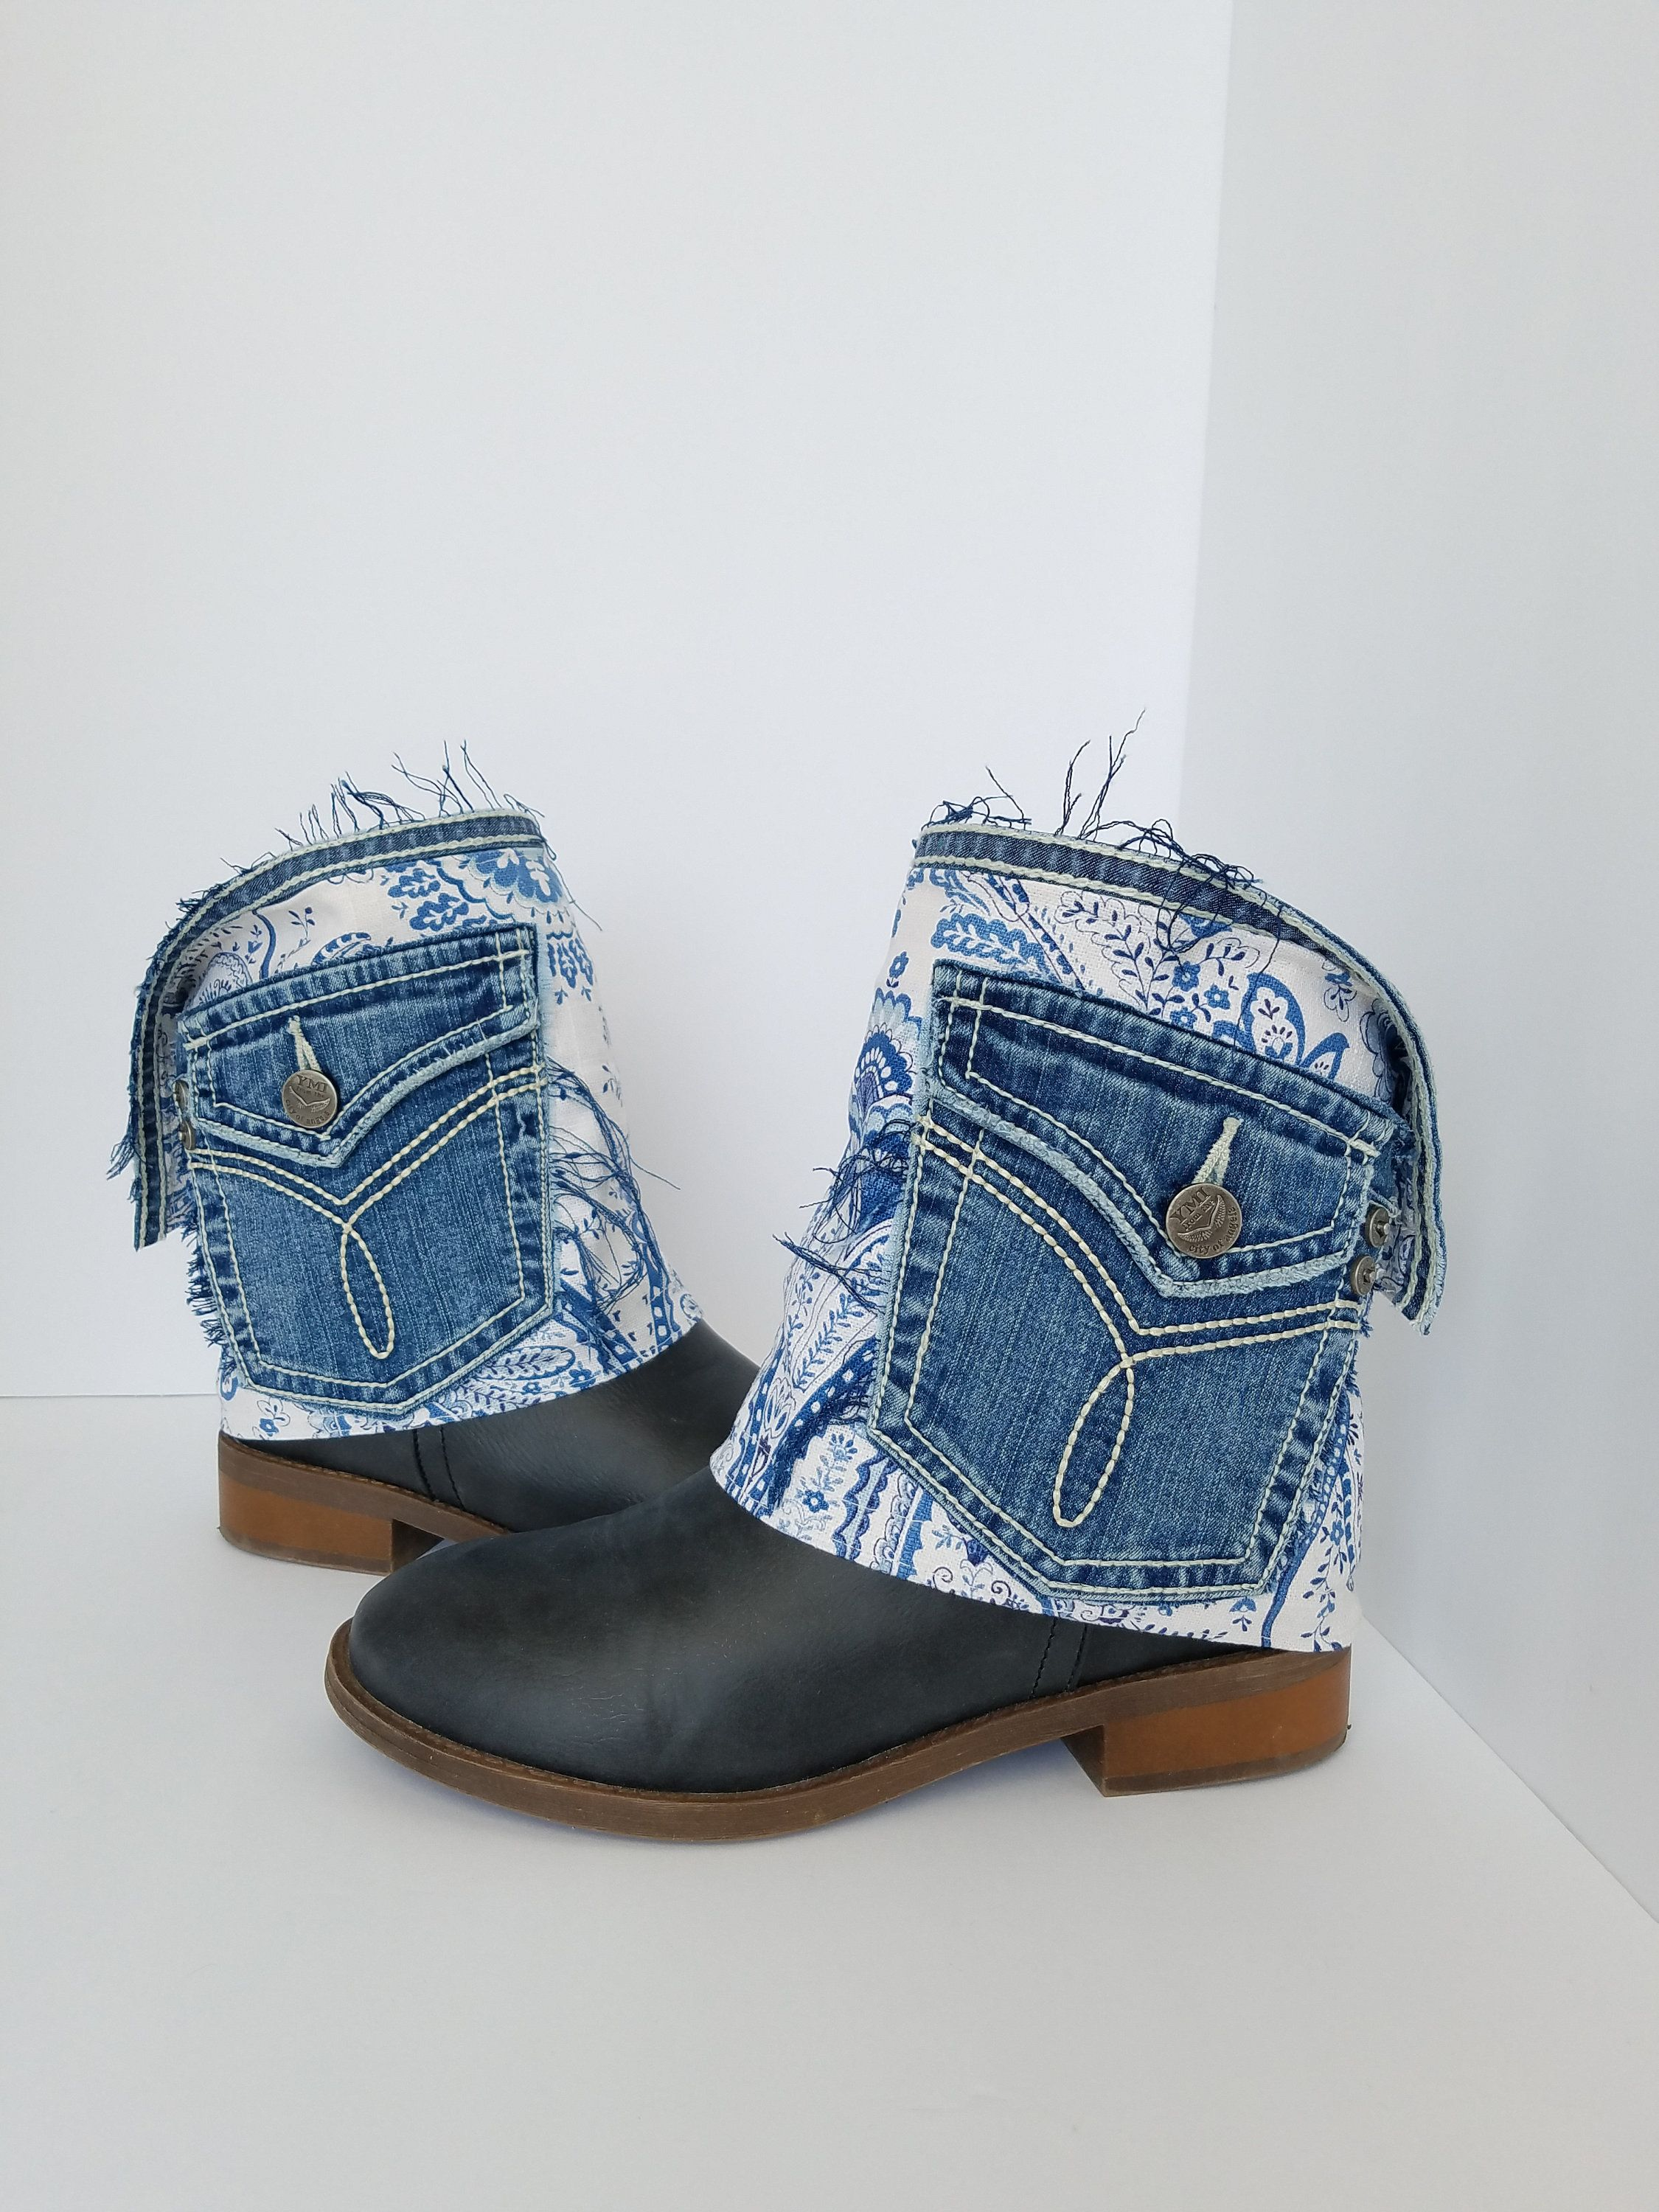 Distressed Denim Boot Covers Blue White Spats Frayed